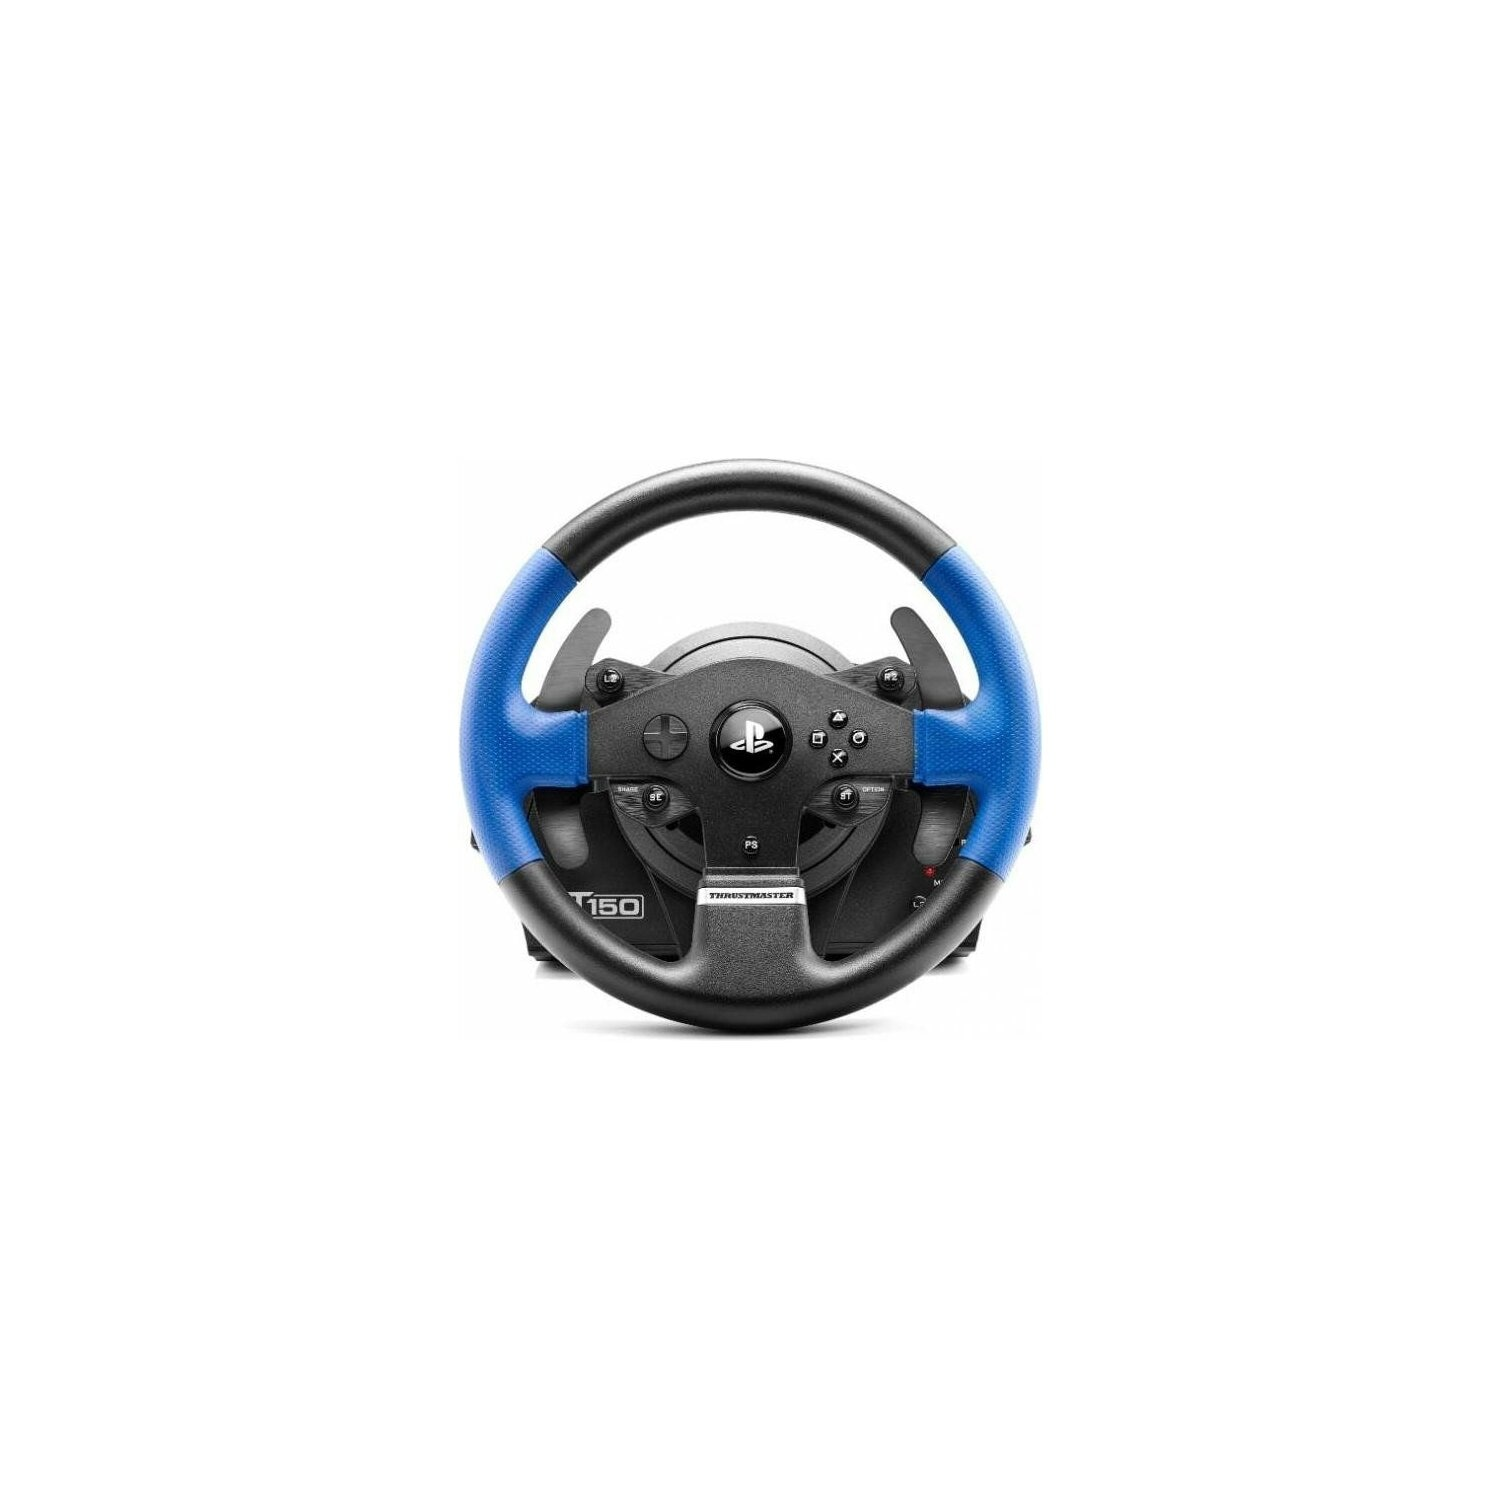 Kierownica THRUSTMASTER T150 RS Pro do PS4/PS3/PC